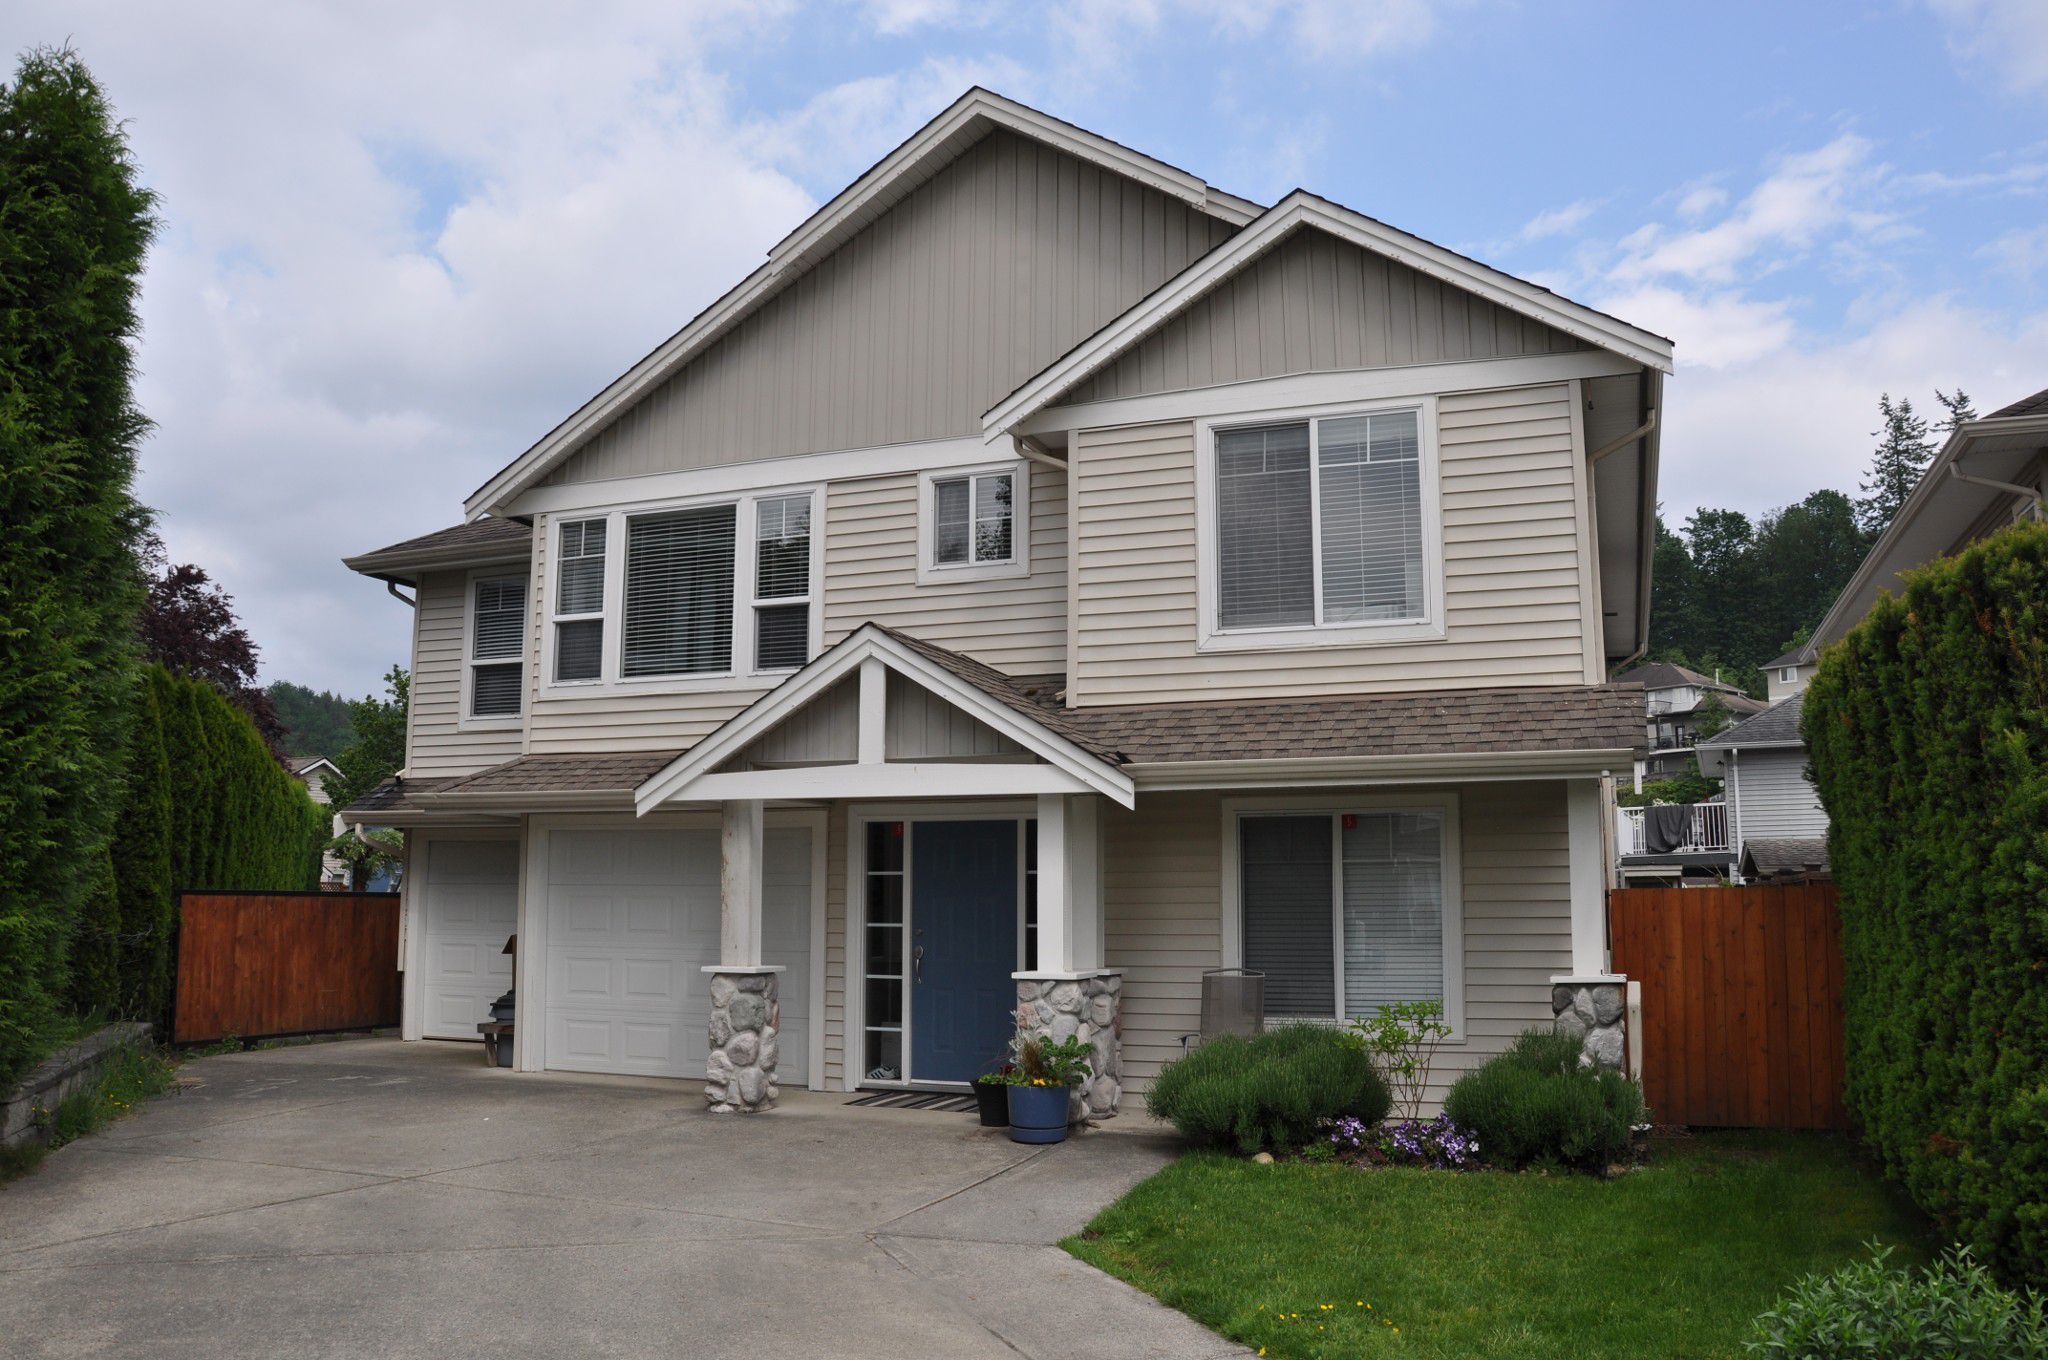 Main Photo: 4076 Channel St. in Abbotsford: Abbotsford East House for rent